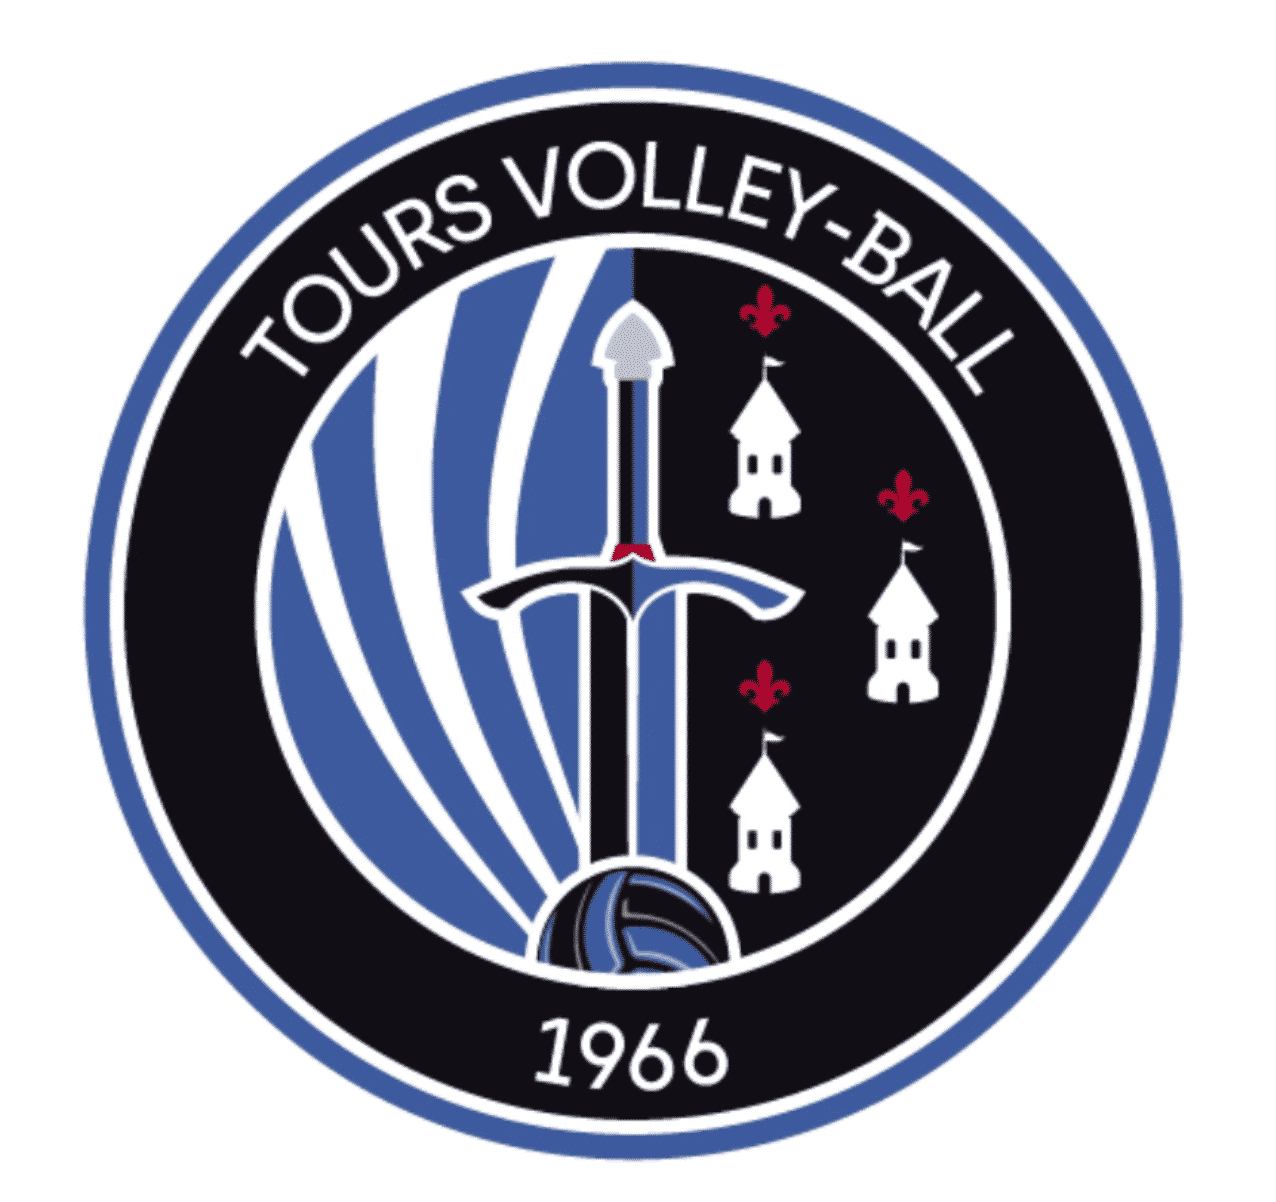 Nouveau-blason-logo-tours-volley-ball-2020-1